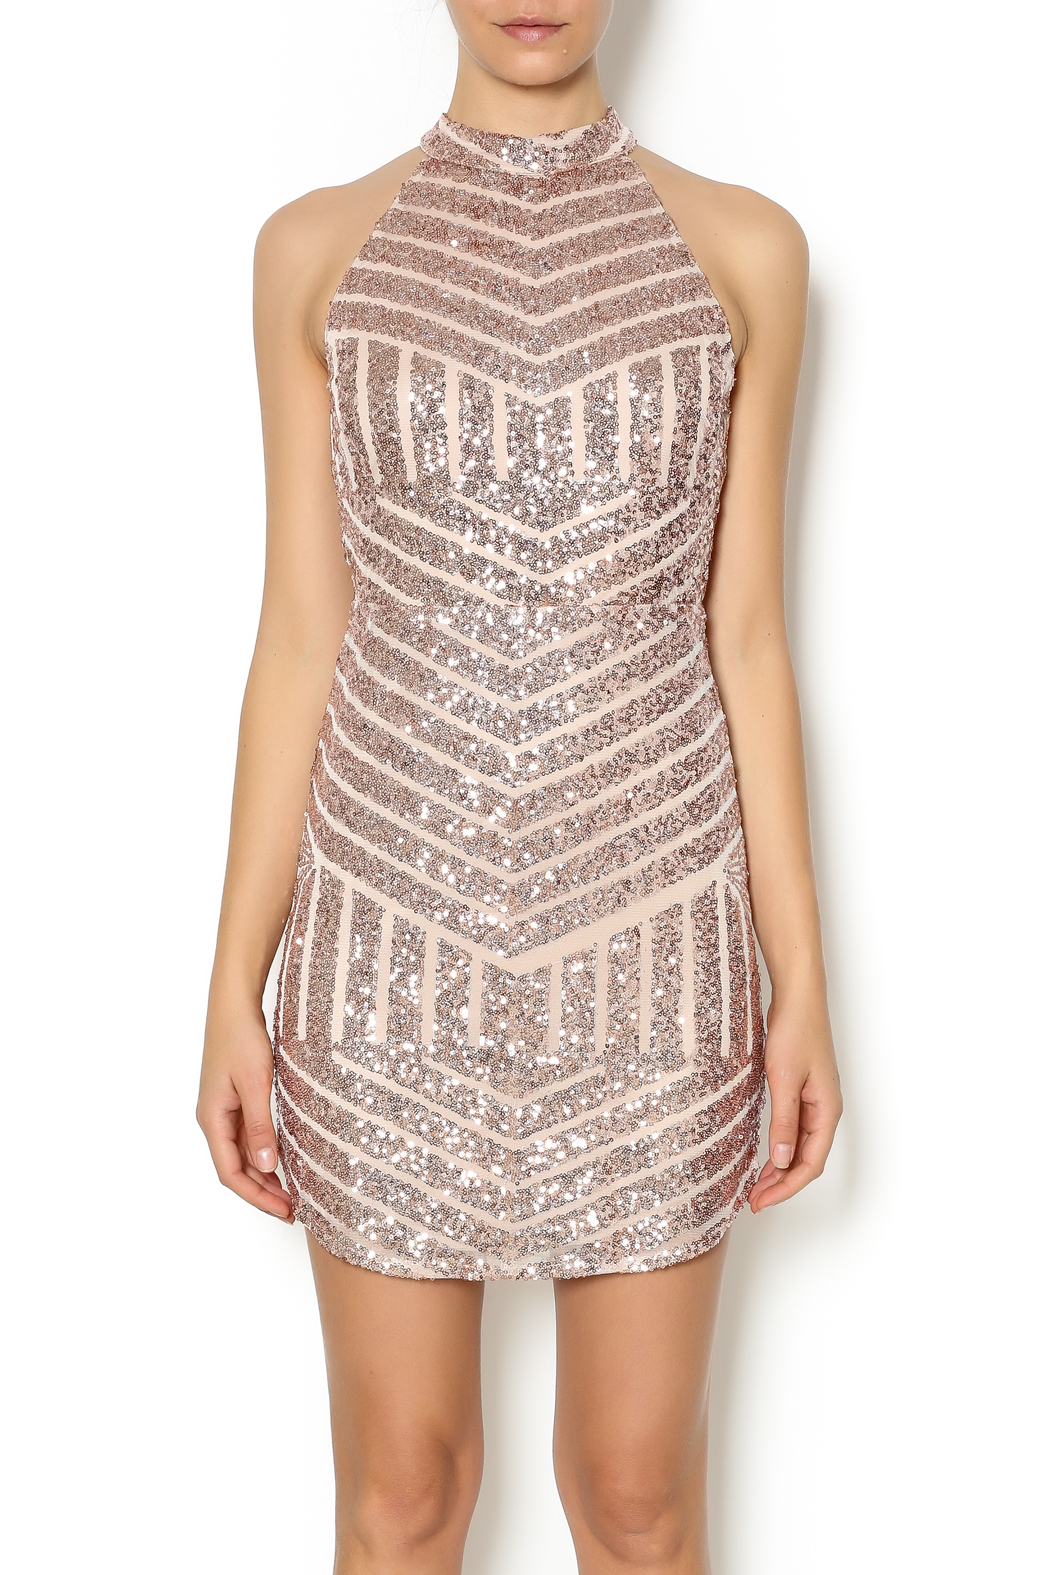 Bronze Sequin Dress What Shoes